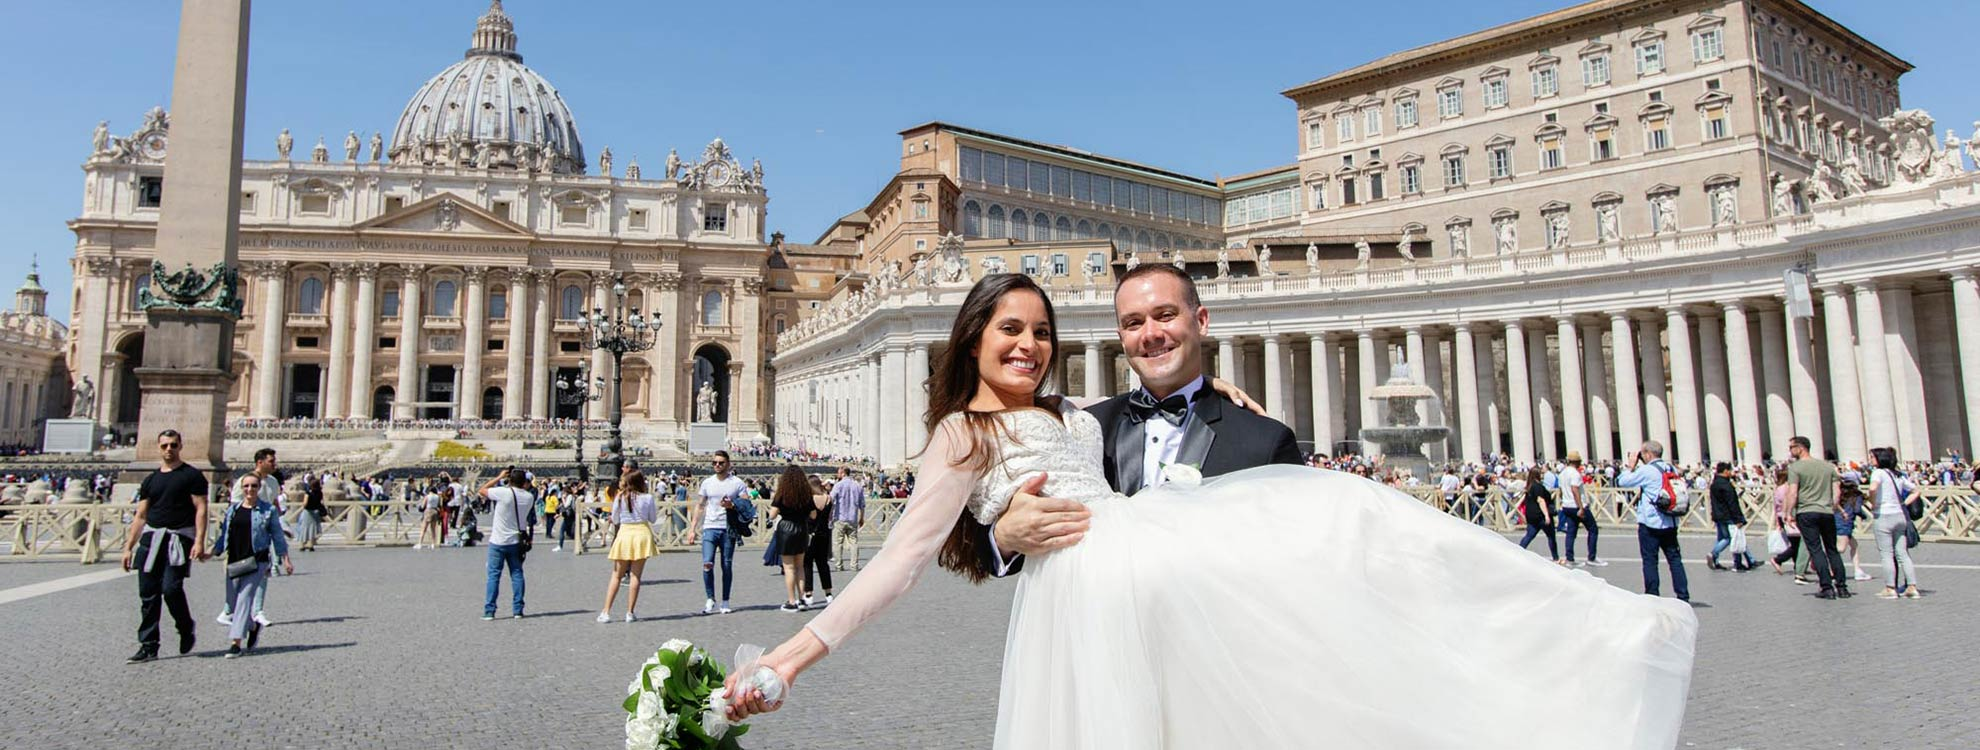 Microwedding in Italy